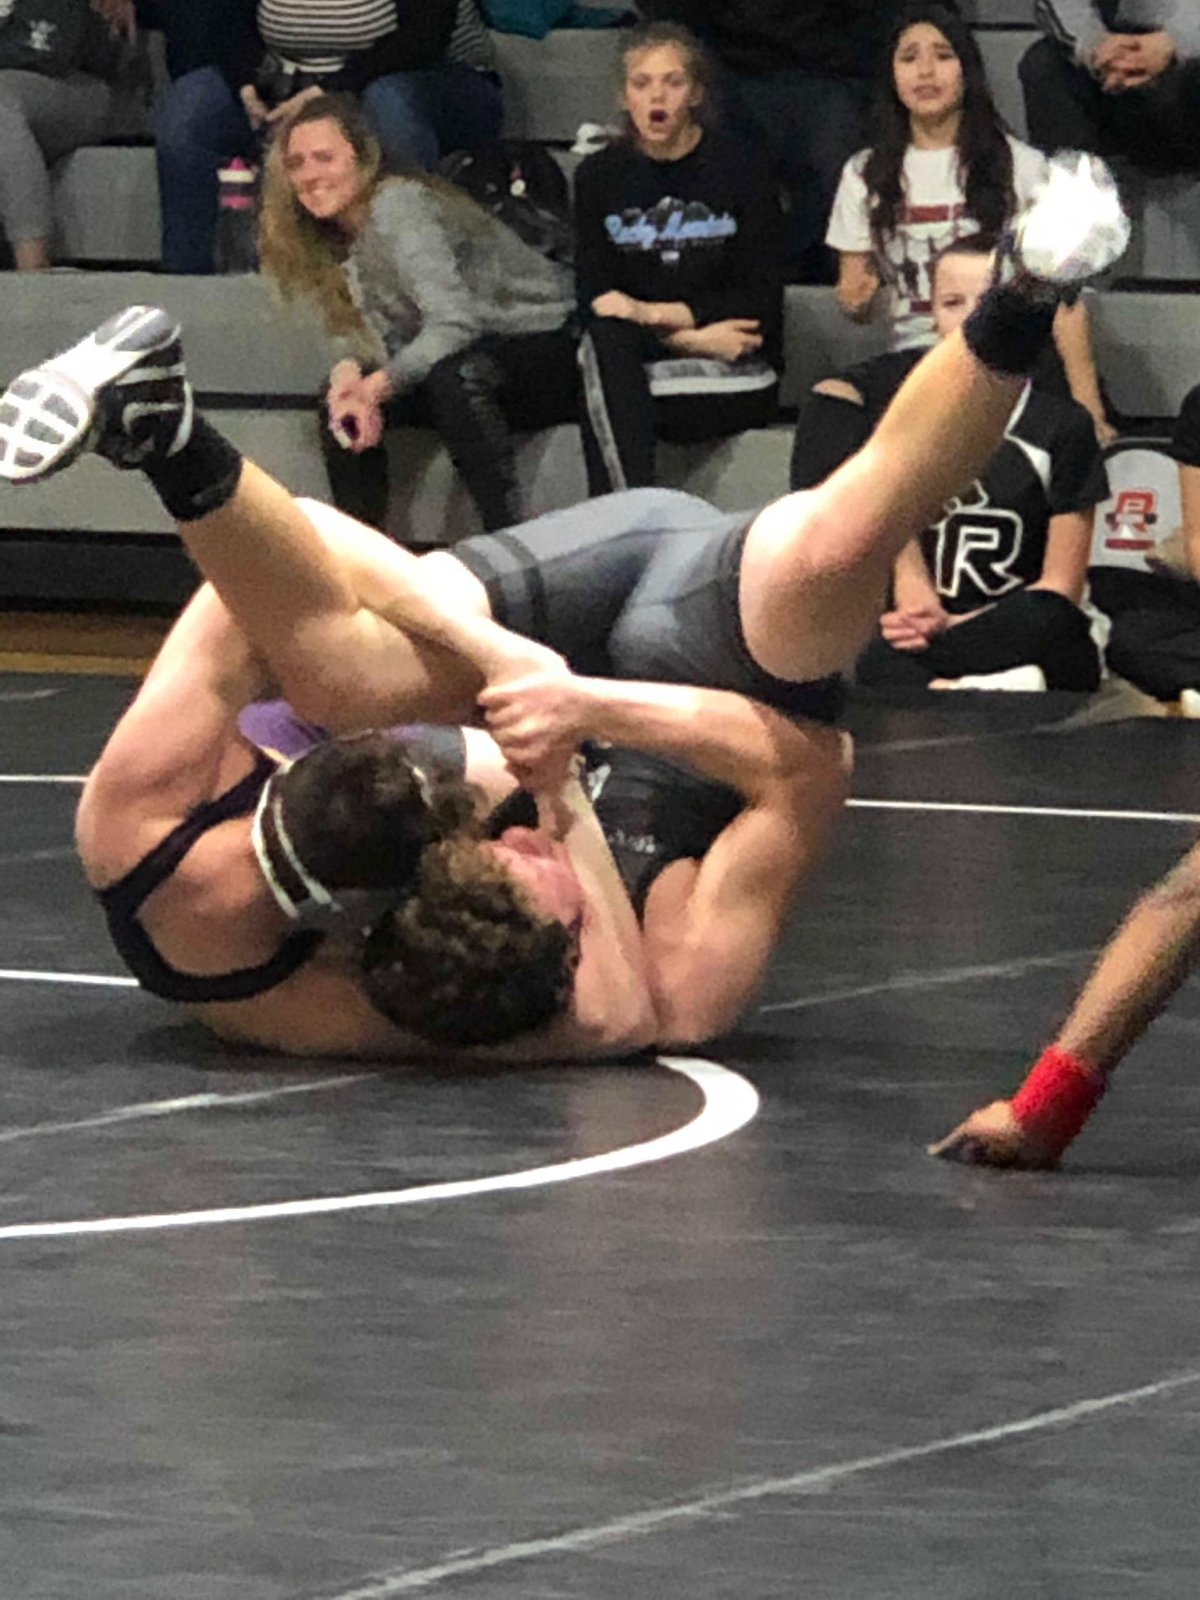 Wrestling: Tough night for the Tigers in Johnstown